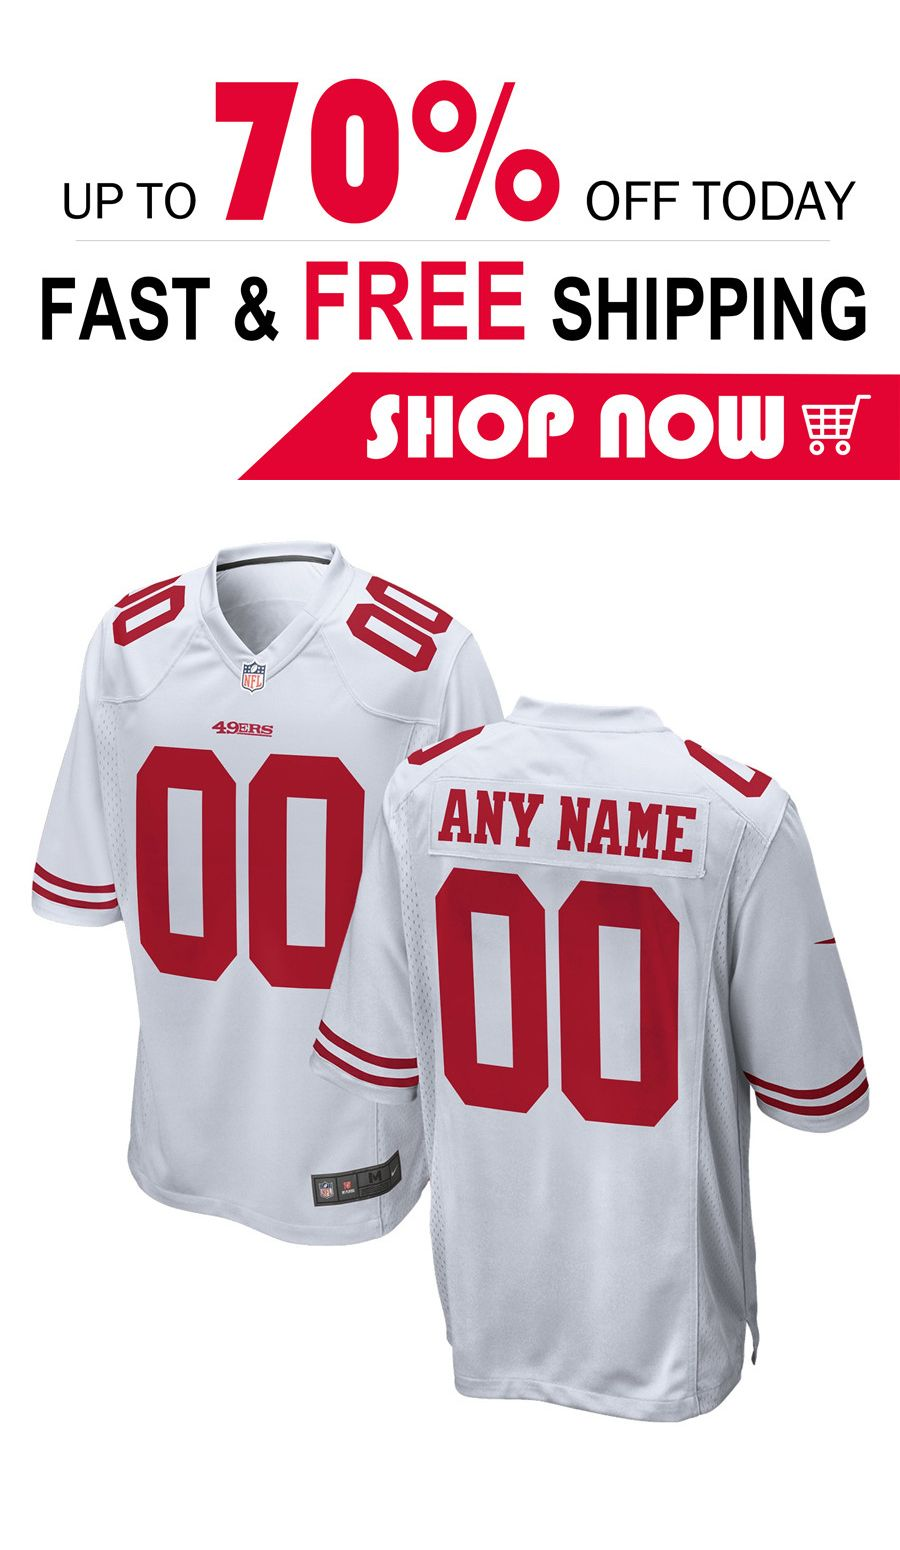 cheaper 109db 5bfb9 mens San Francisco 49ers custom football Game jersey in 2019 ...